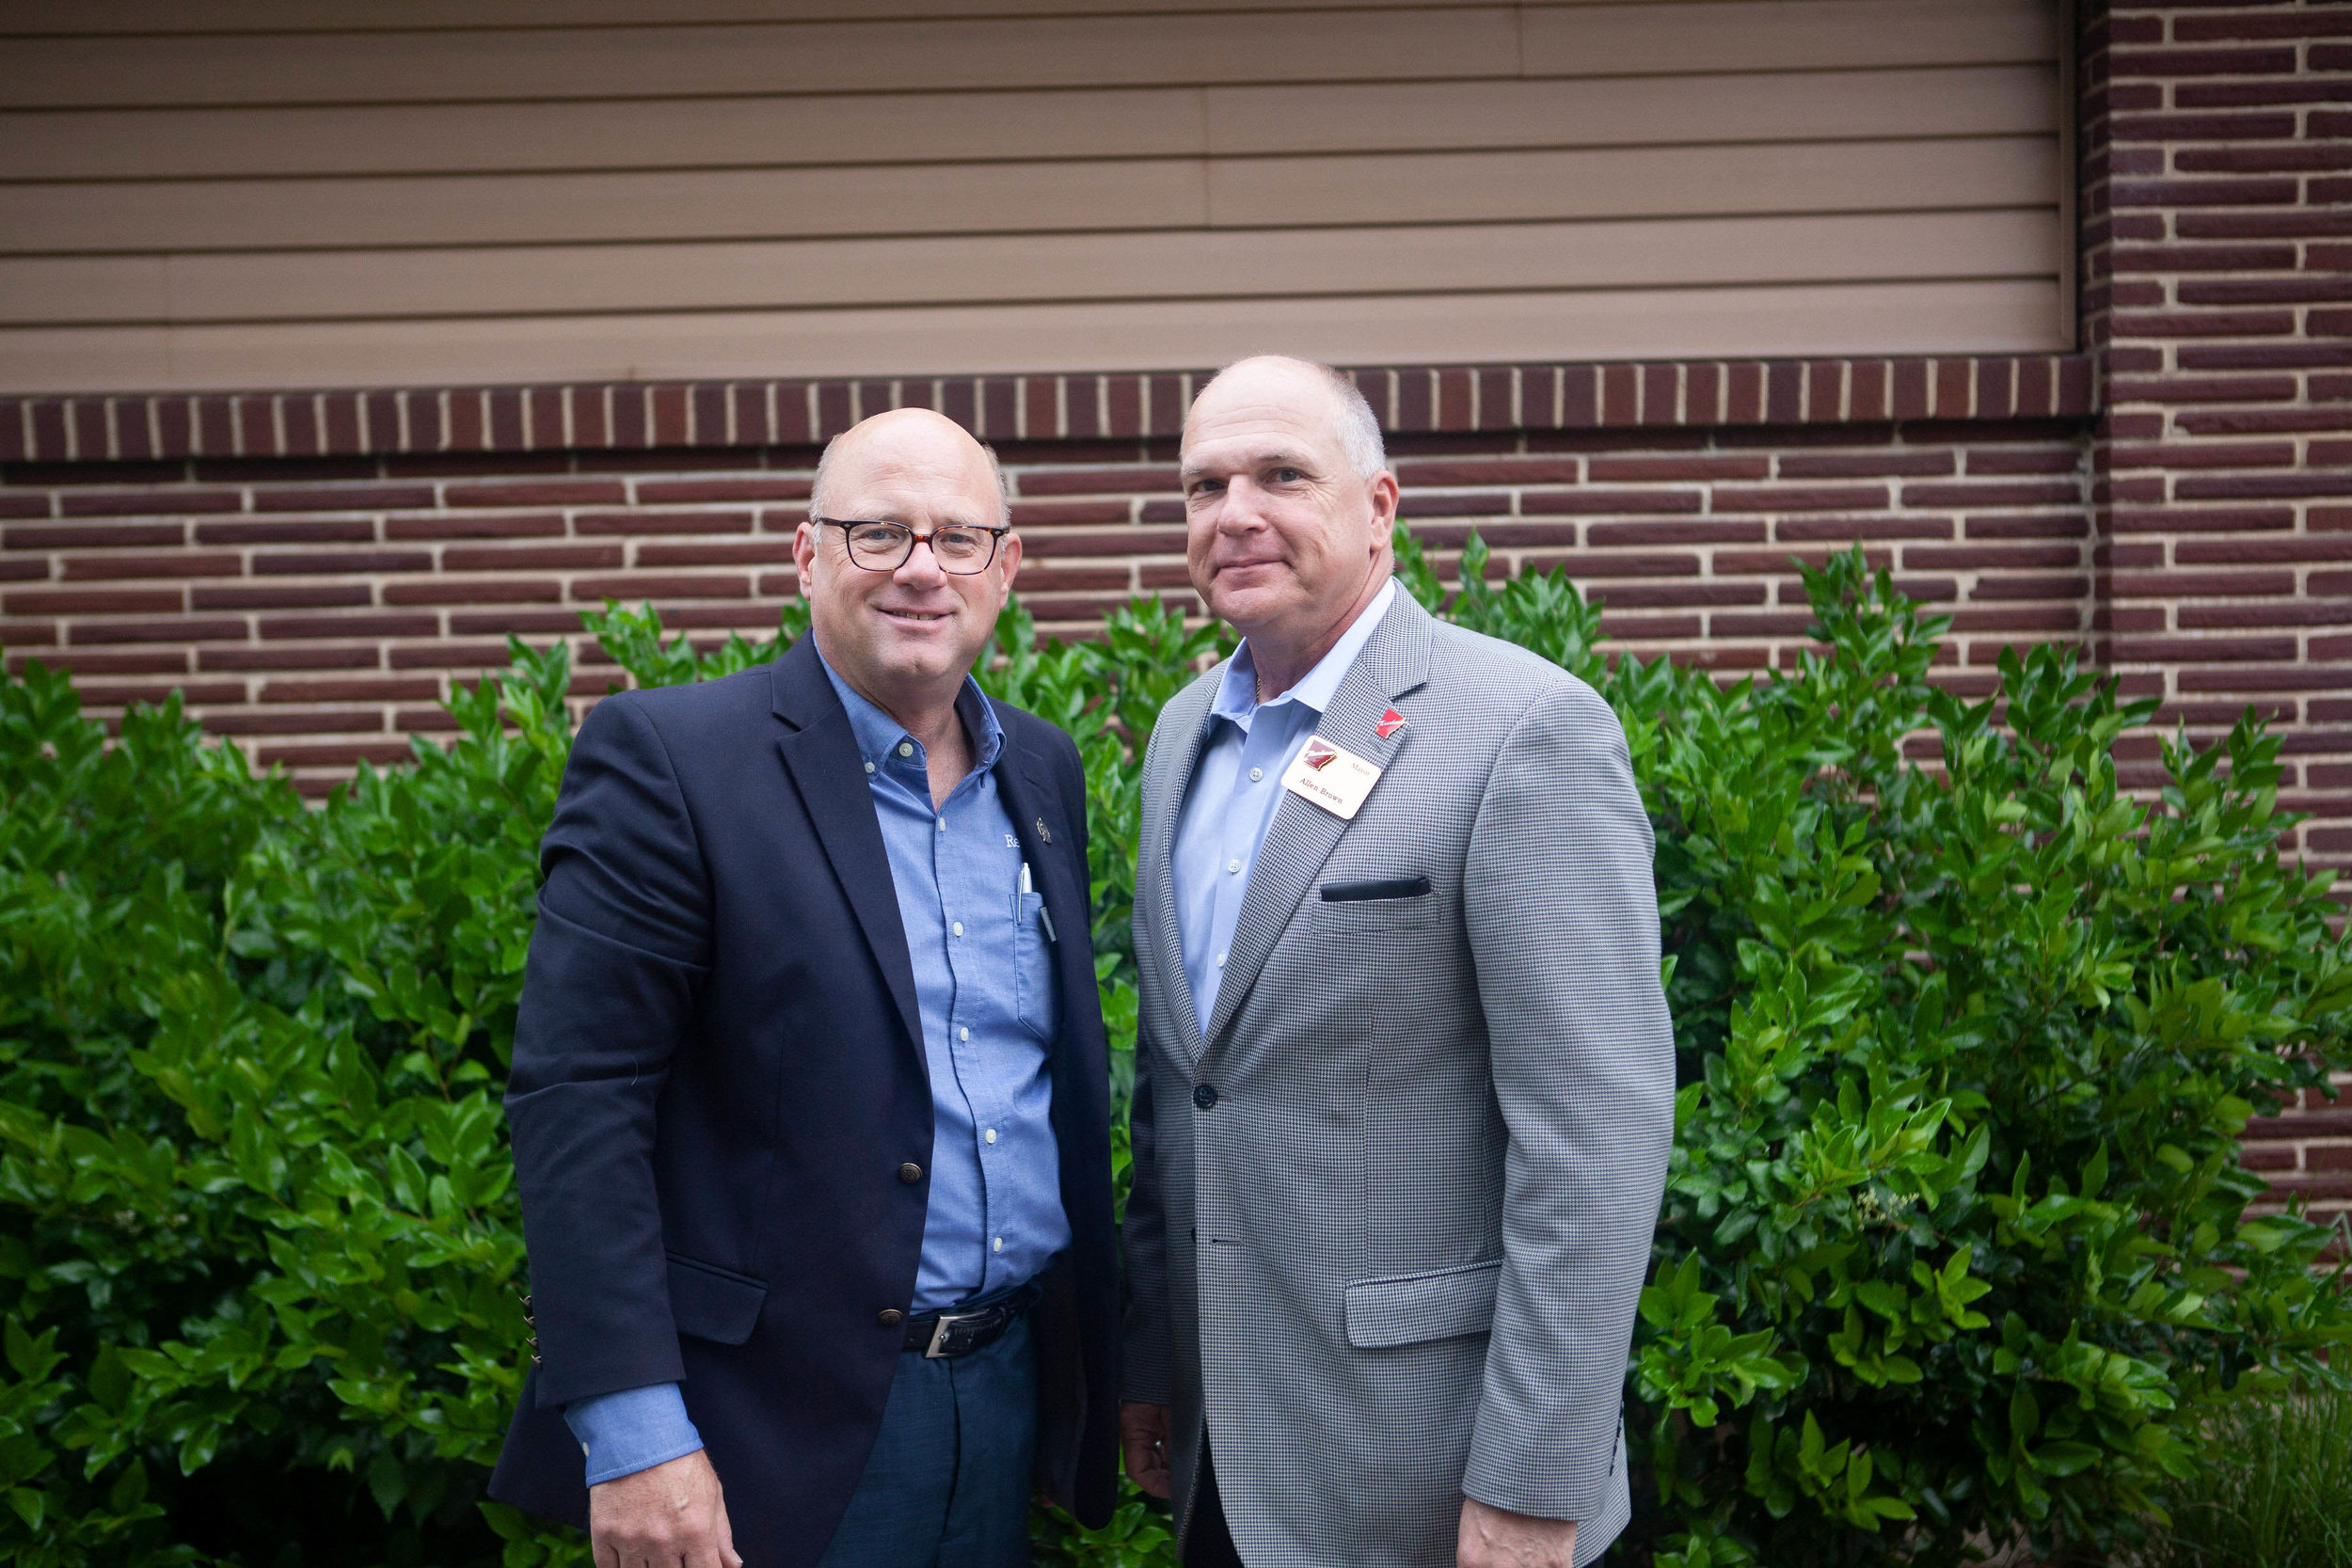 Mayor Bob Bruggeman and Mayor Allen Brown